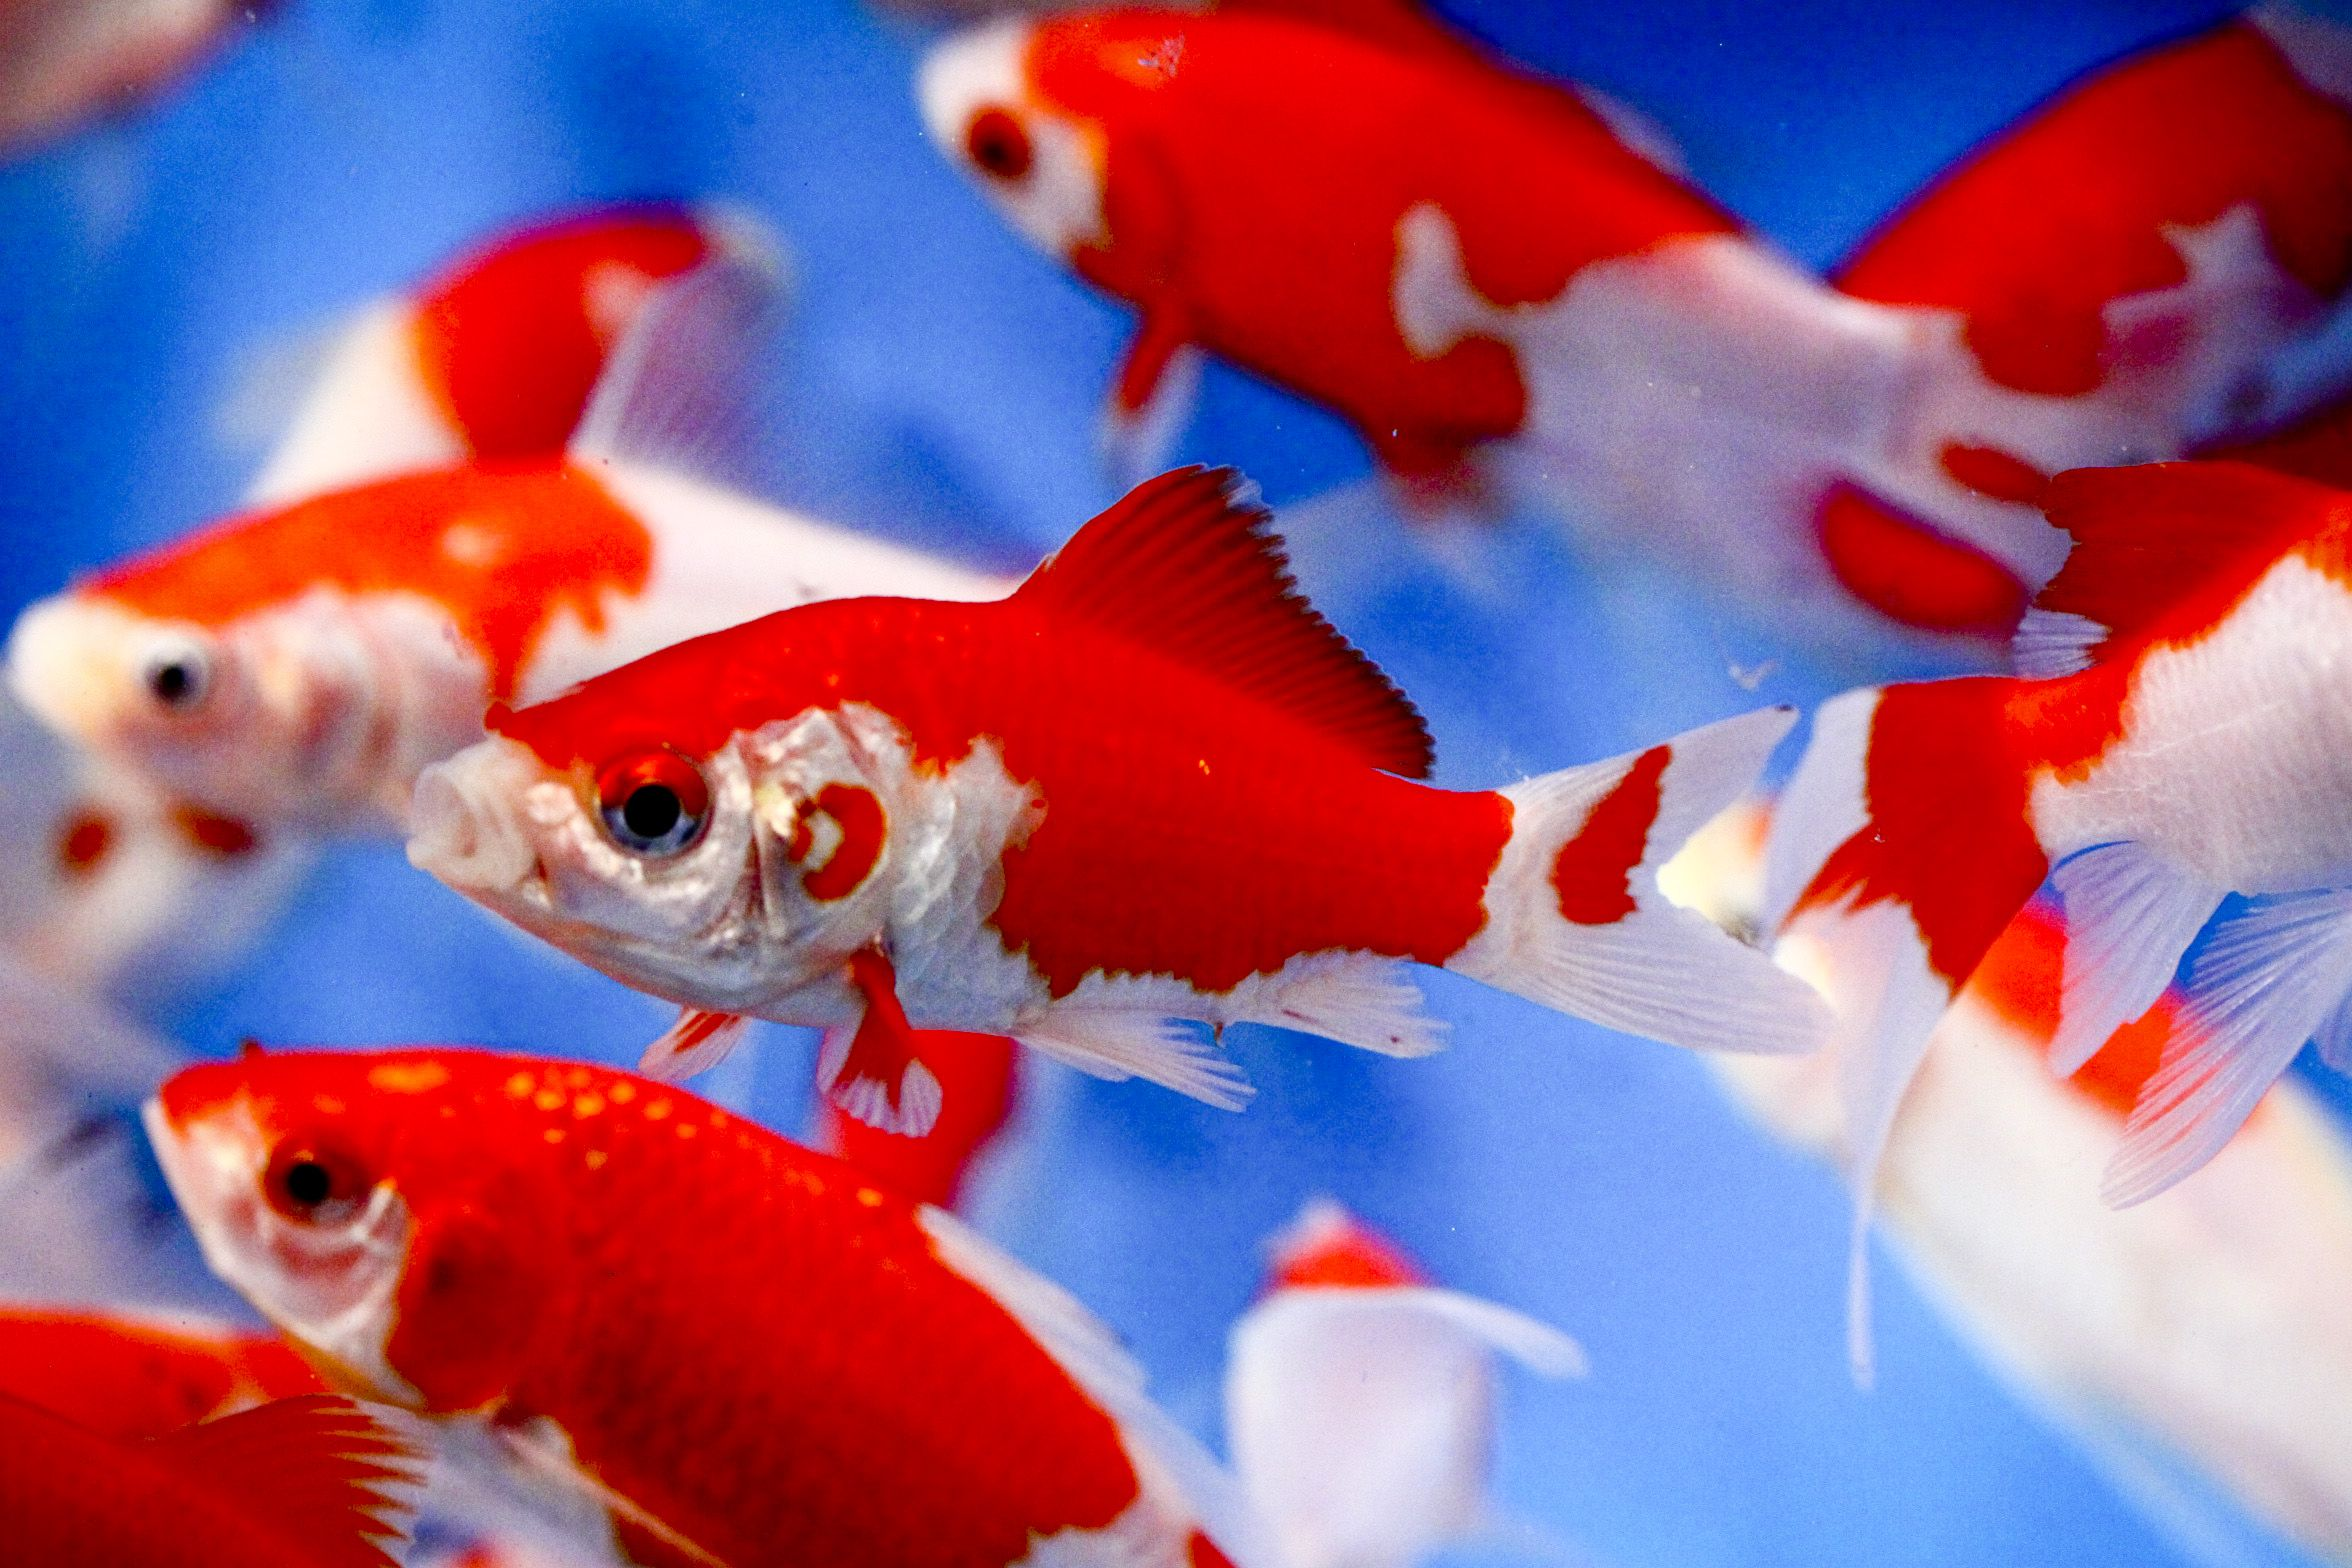 sarasa goldfish | SARASA COMET | Gathering of Goldfish | Pinterest ...